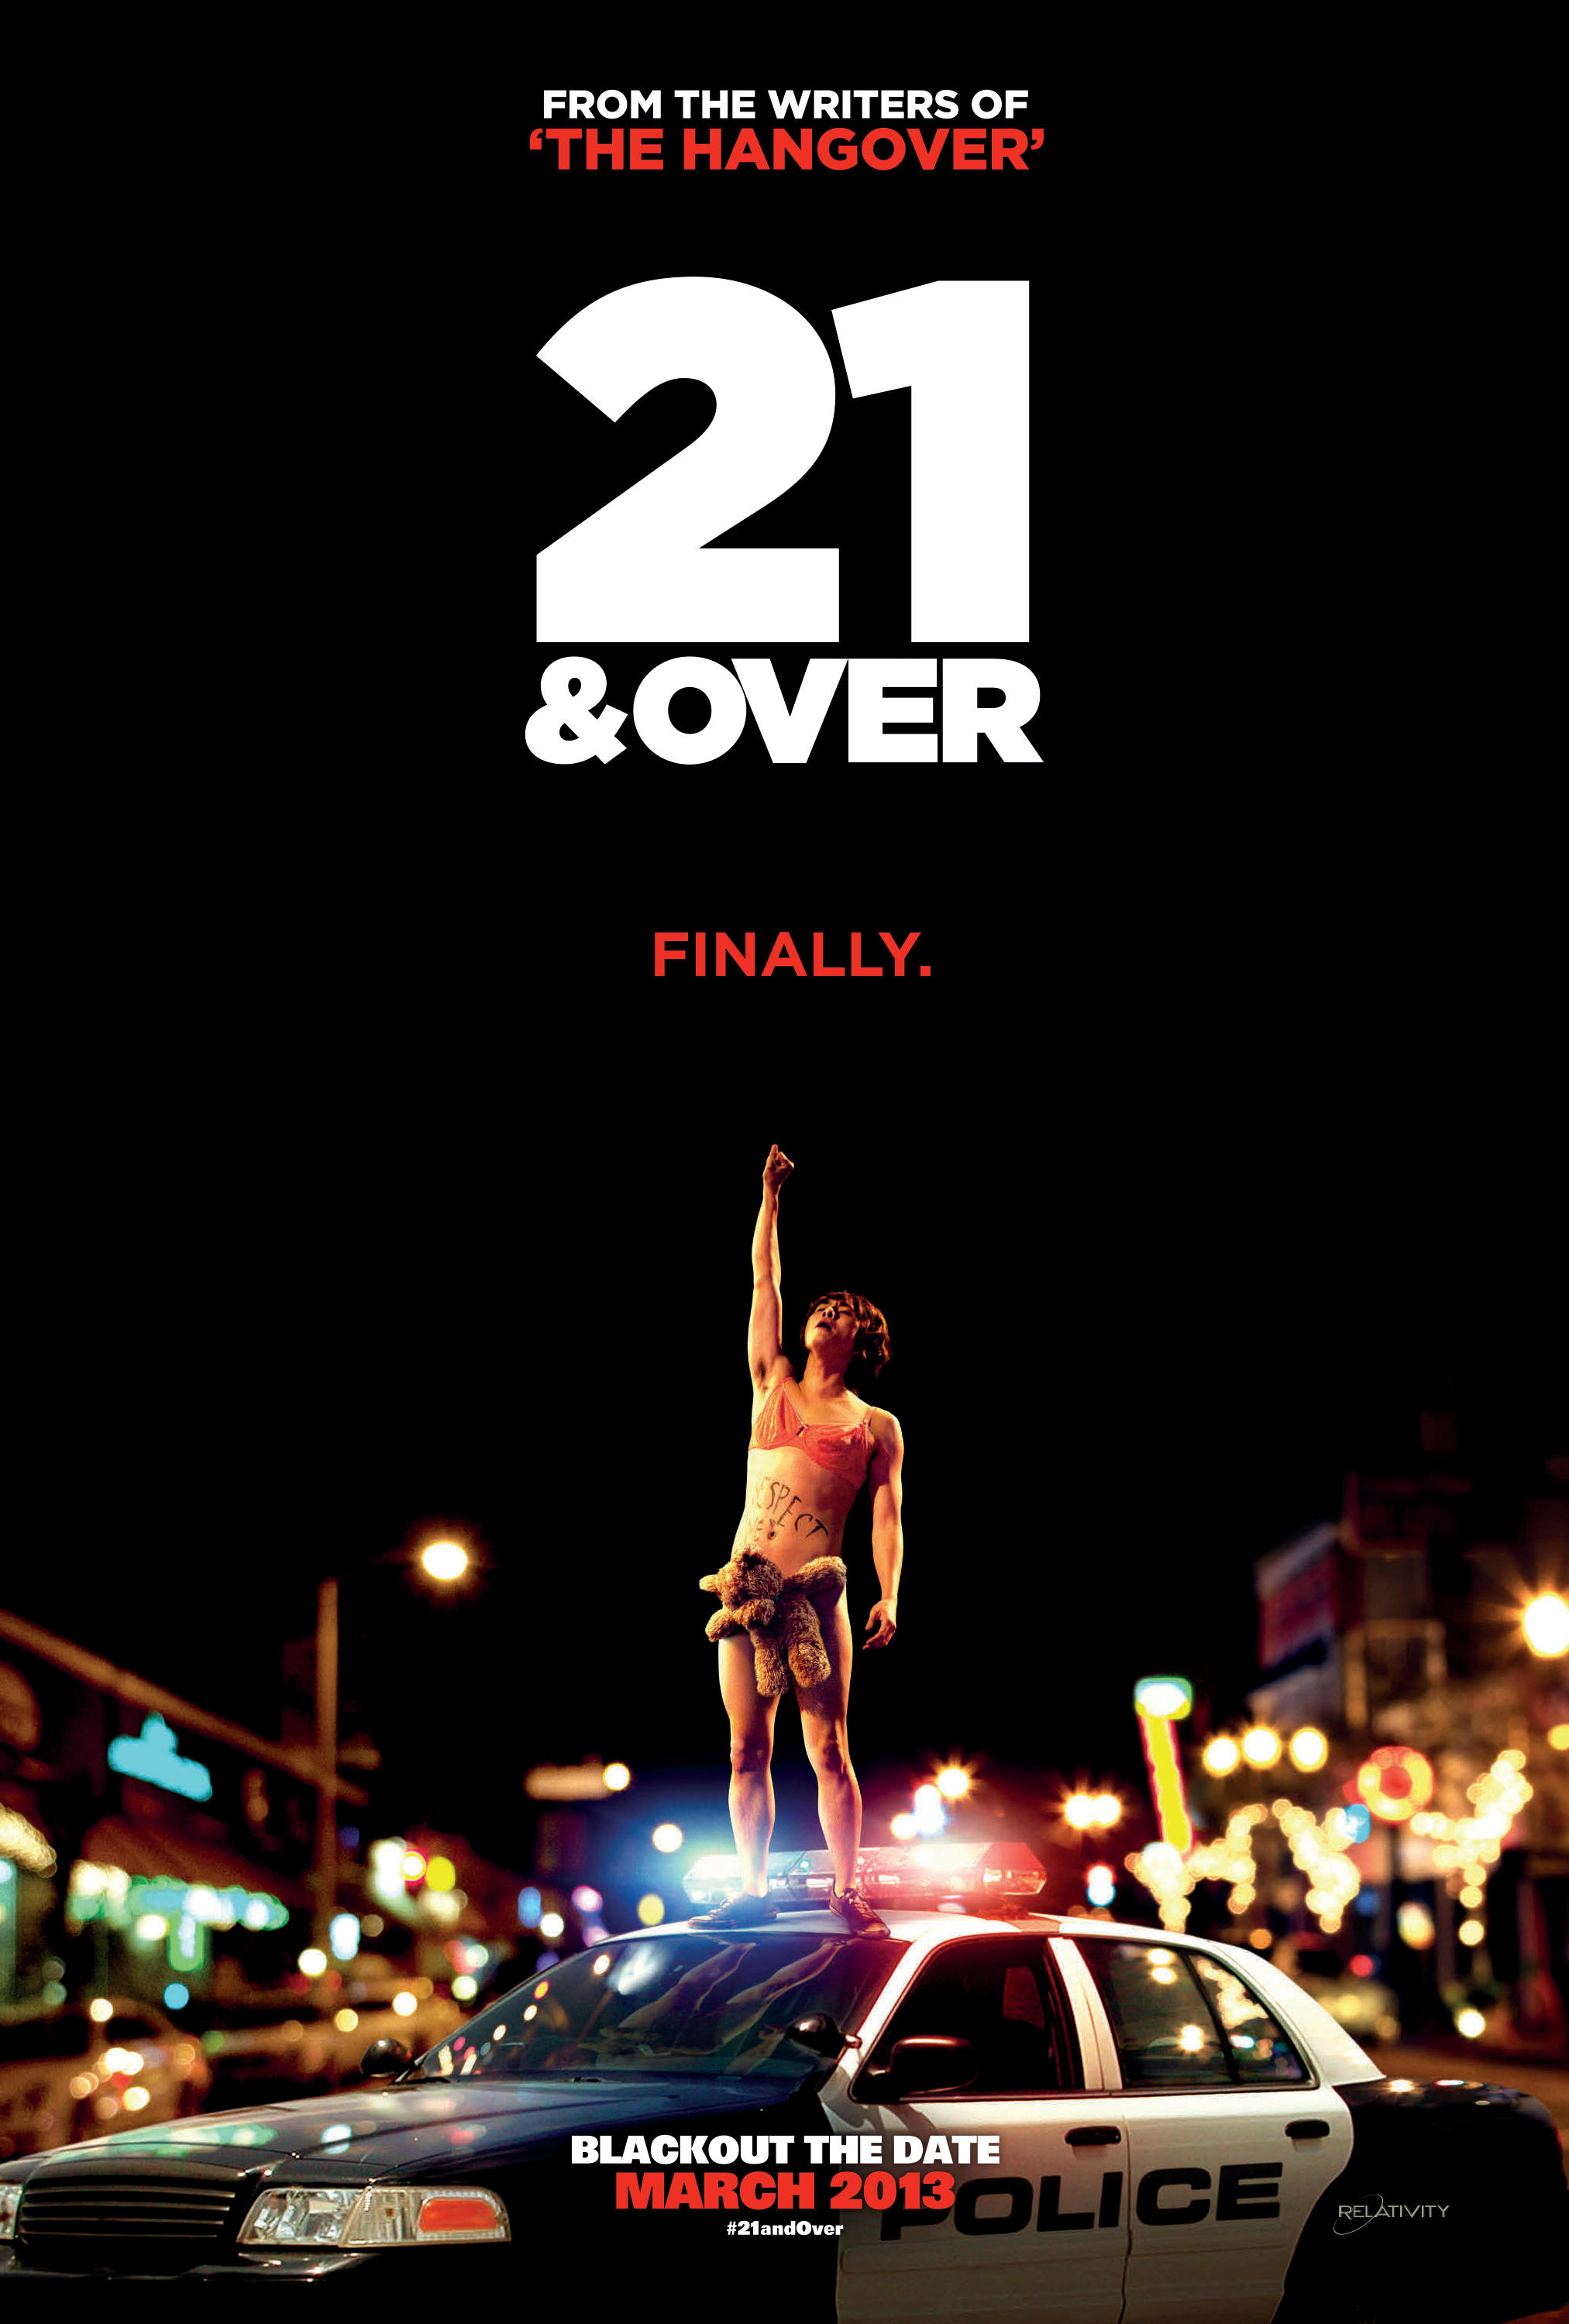 21 and Over is an upcoming American comedy film written by, and the directorial debut of, Jon Lucas and Scott Moore, writers of The Hangover. The film stars Miles Teller, Justin Chon, Sarah Wright, and Skylar Astin.